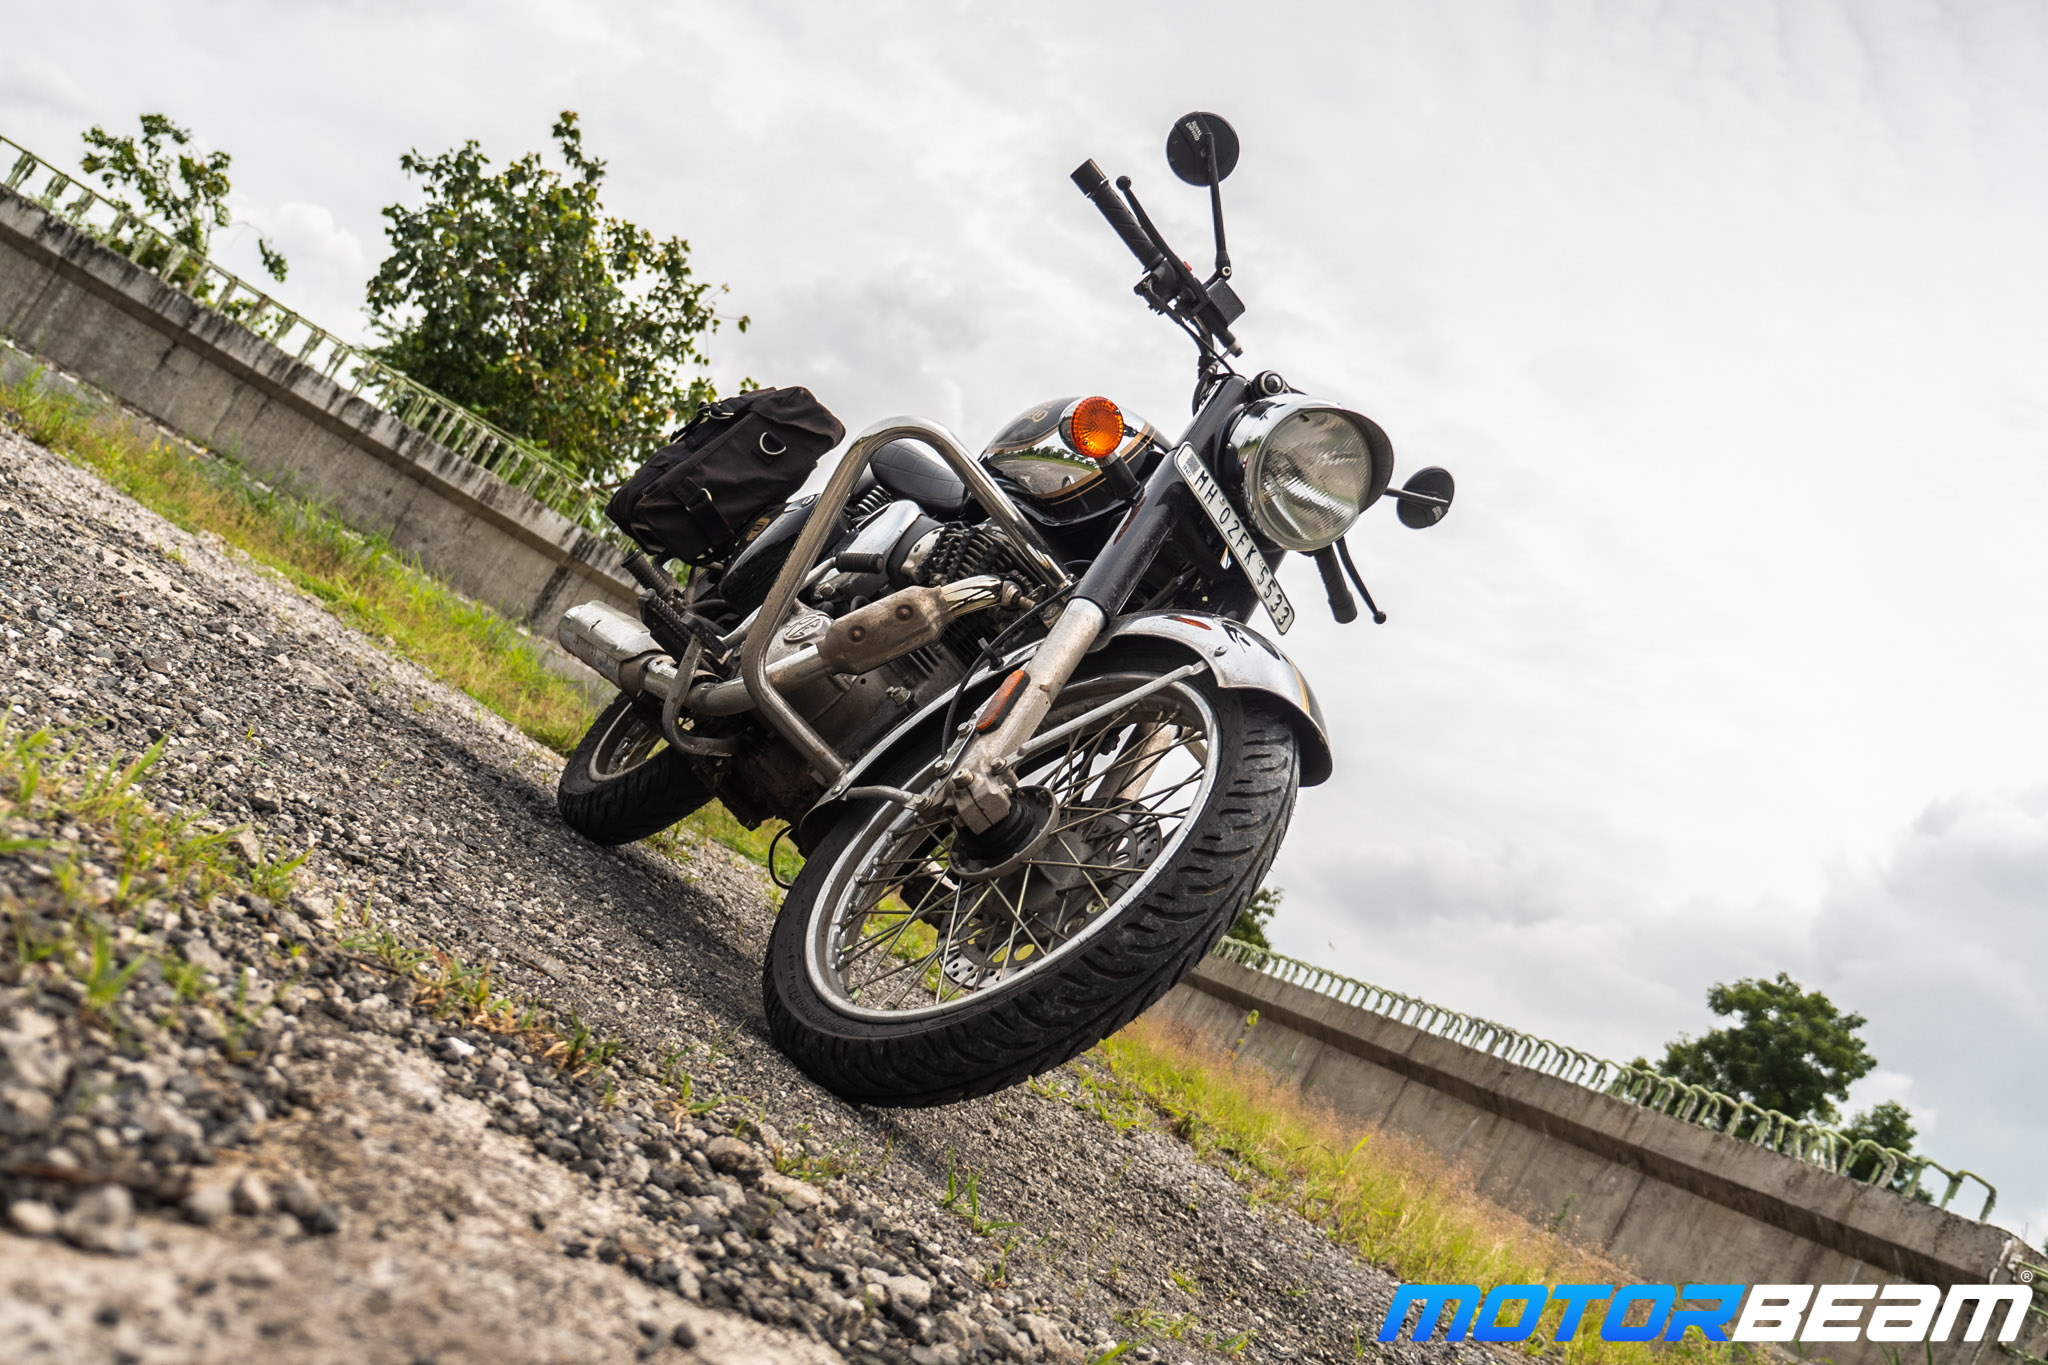 2020 Royal Enfield Classic 350 Review 31